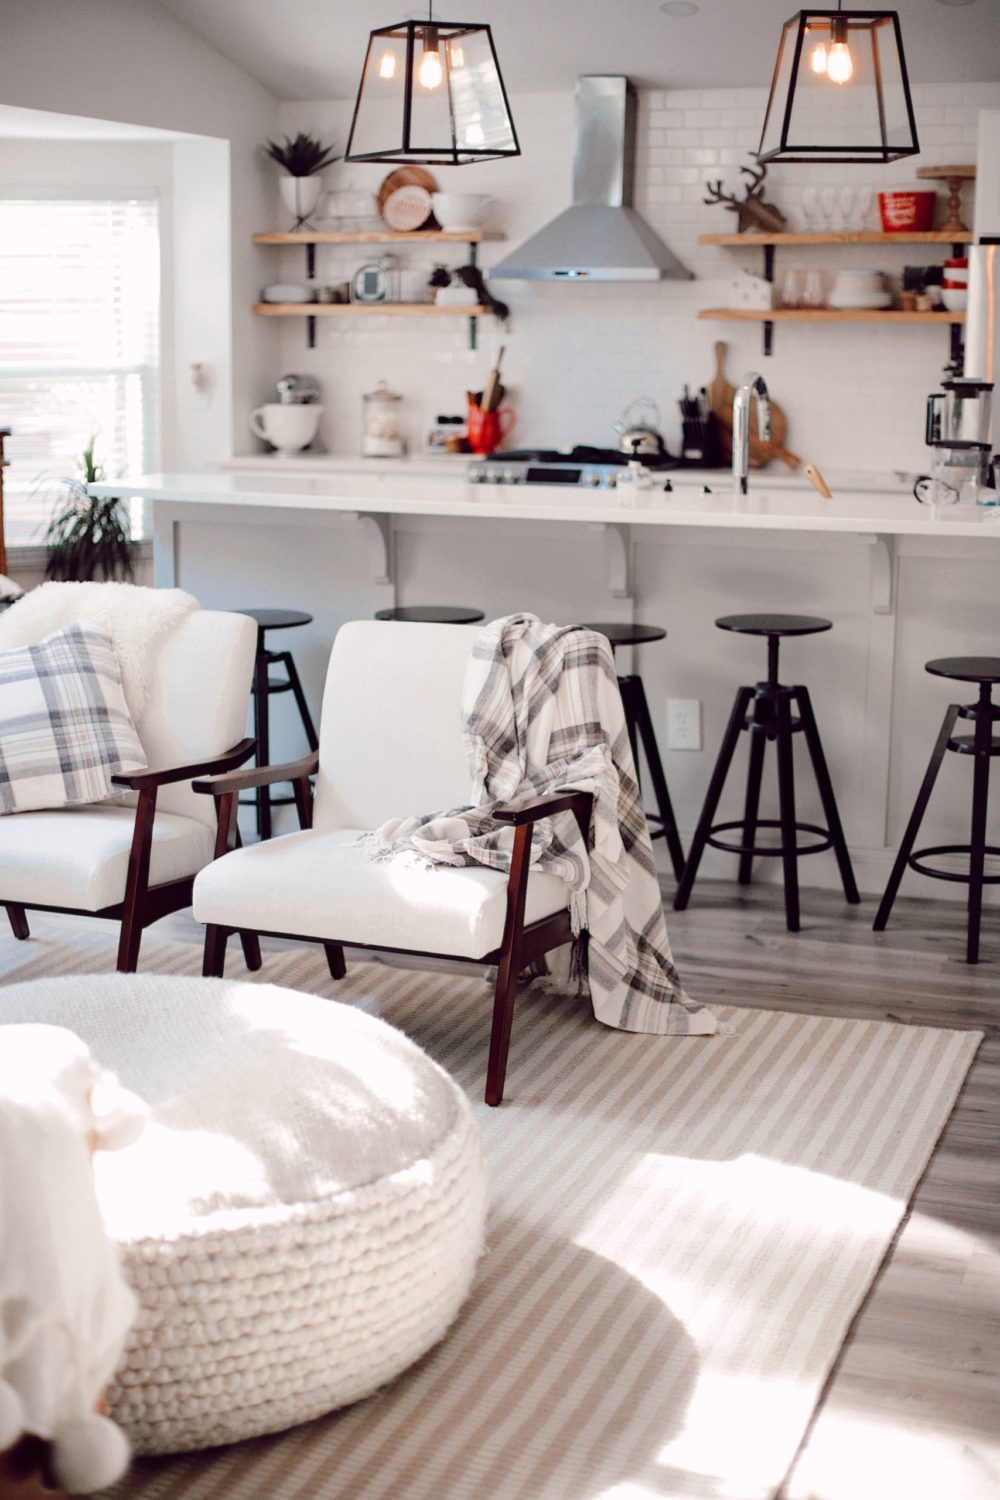 7 Geniously Efficient Mom Hacks for Home Design | 7 Genius Efficient Home Design Hacks for Moms by popular Florida life and style blog, Fresh Mommy Blog: image of a neutral colored kitchen and living room with furniture from CORT furniture outlet.